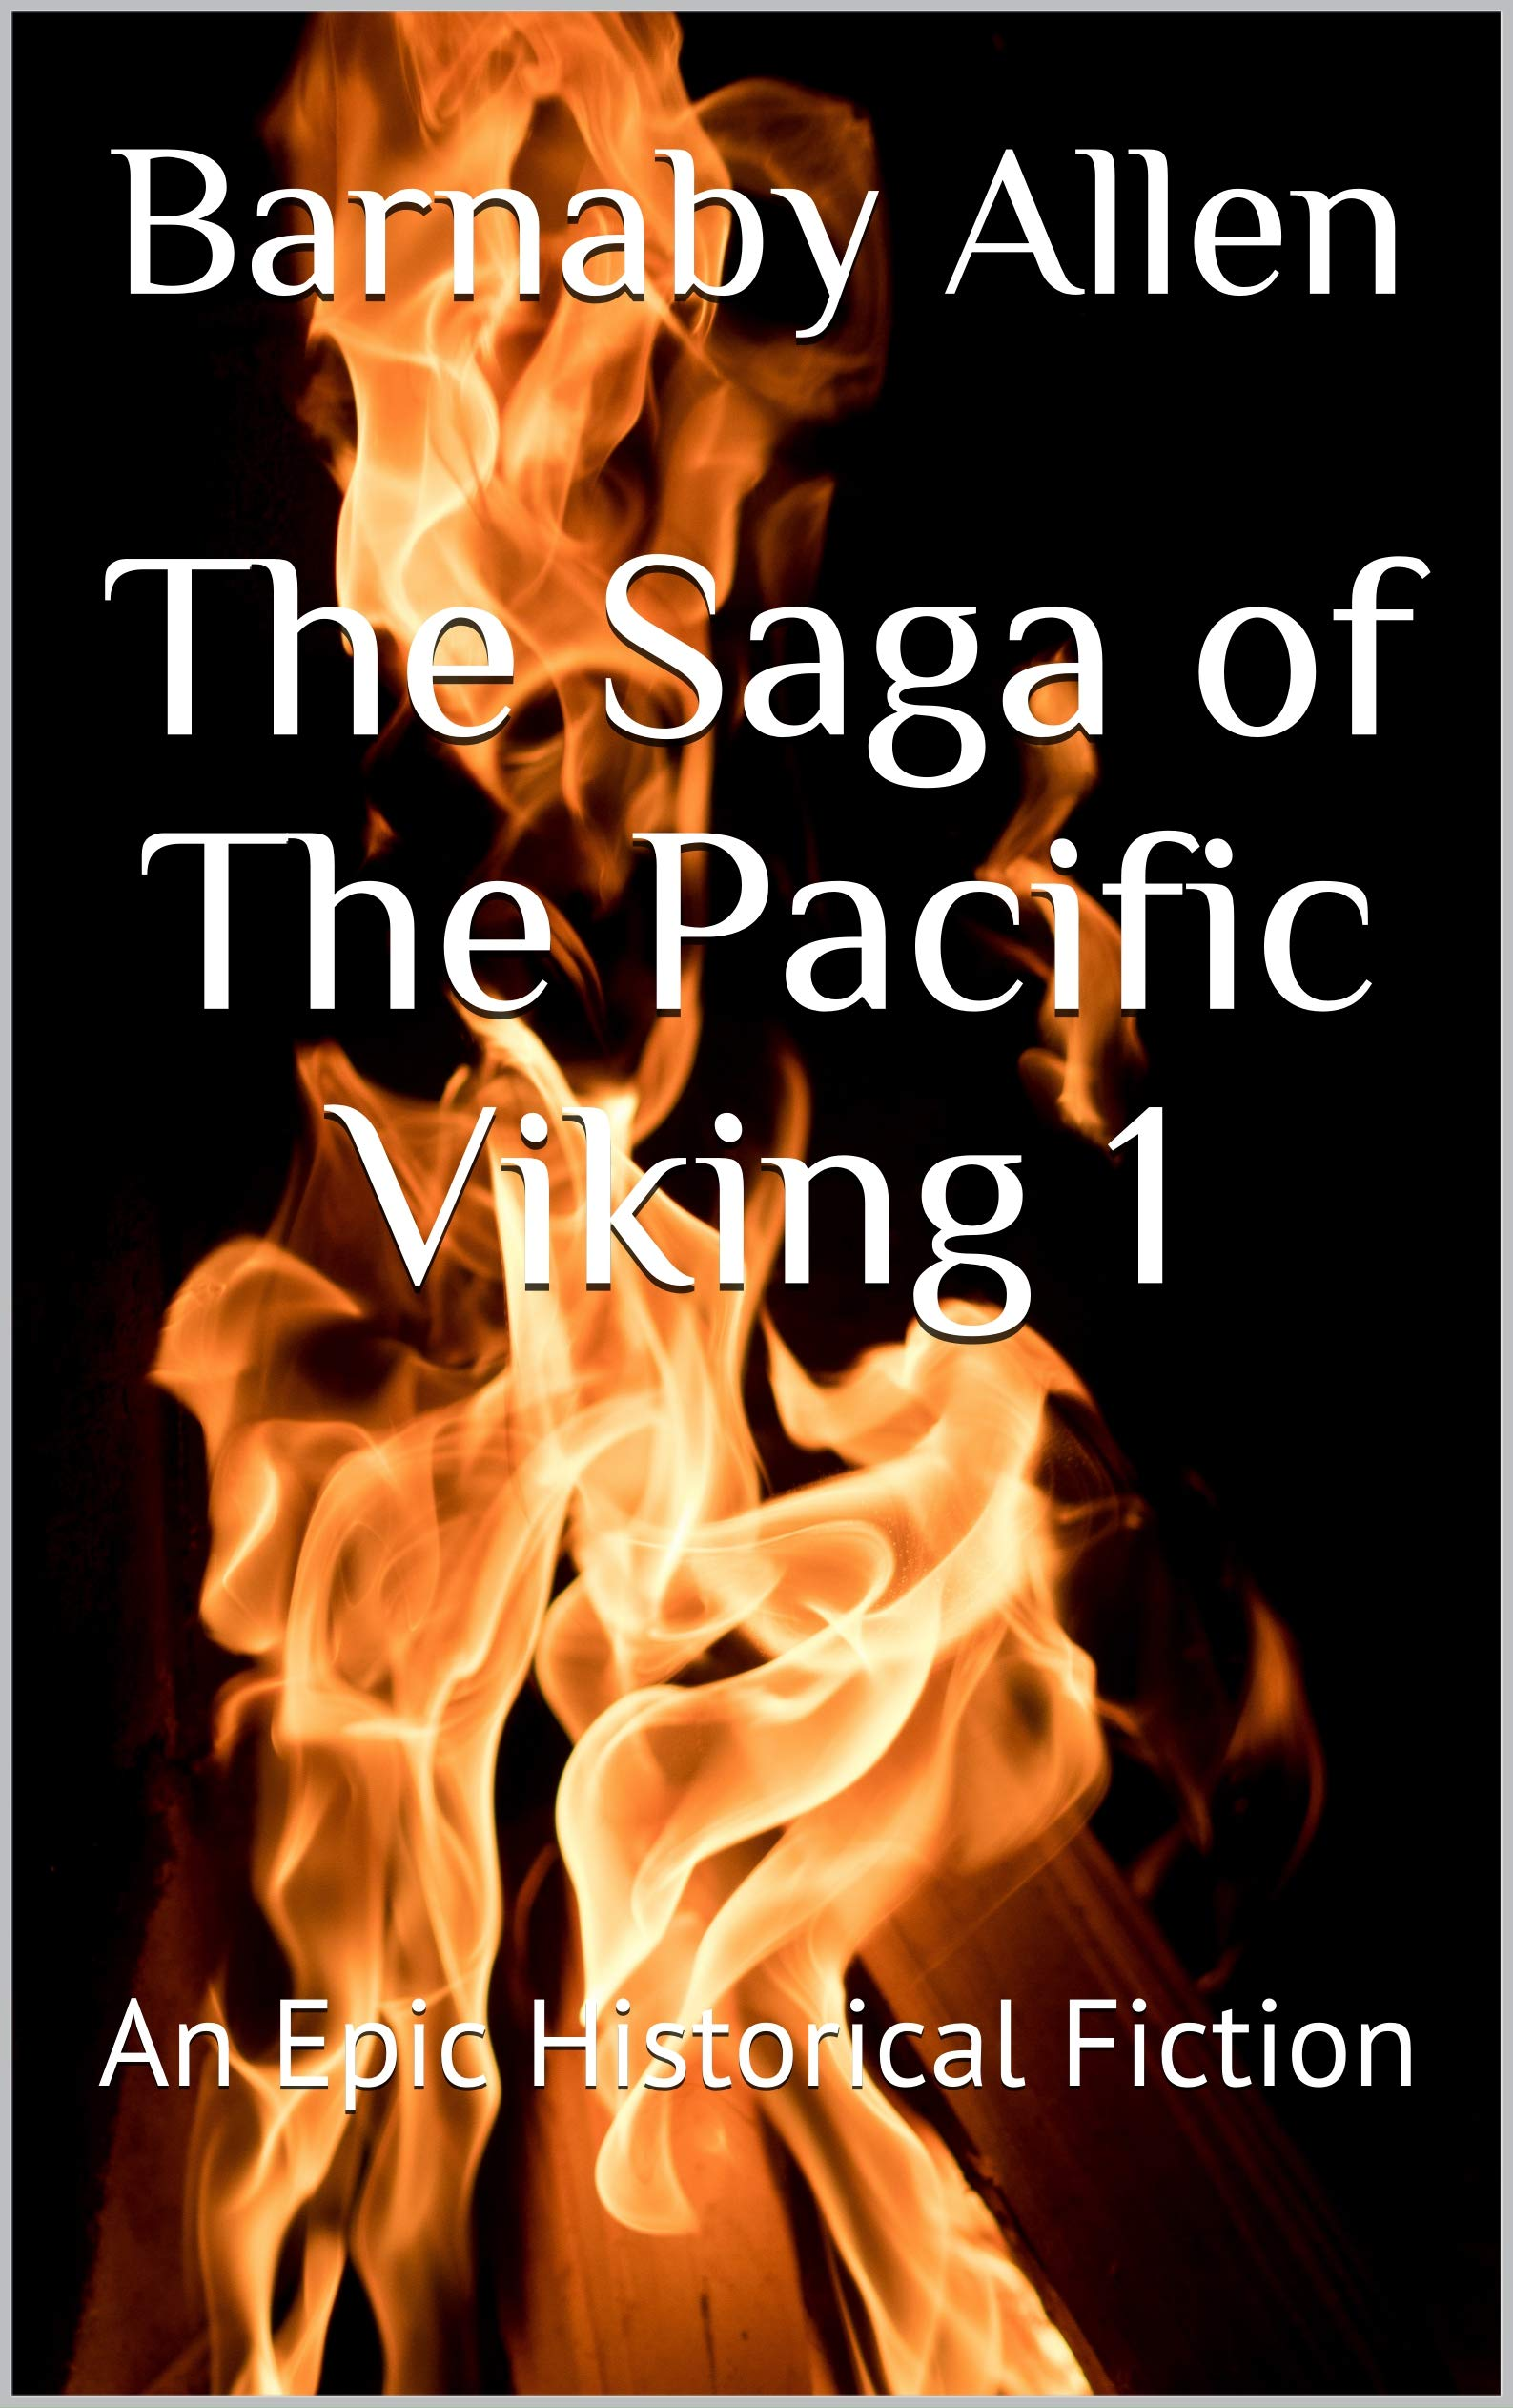 The Saga of The Pacific Viking 1: An Epic Historical Fiction